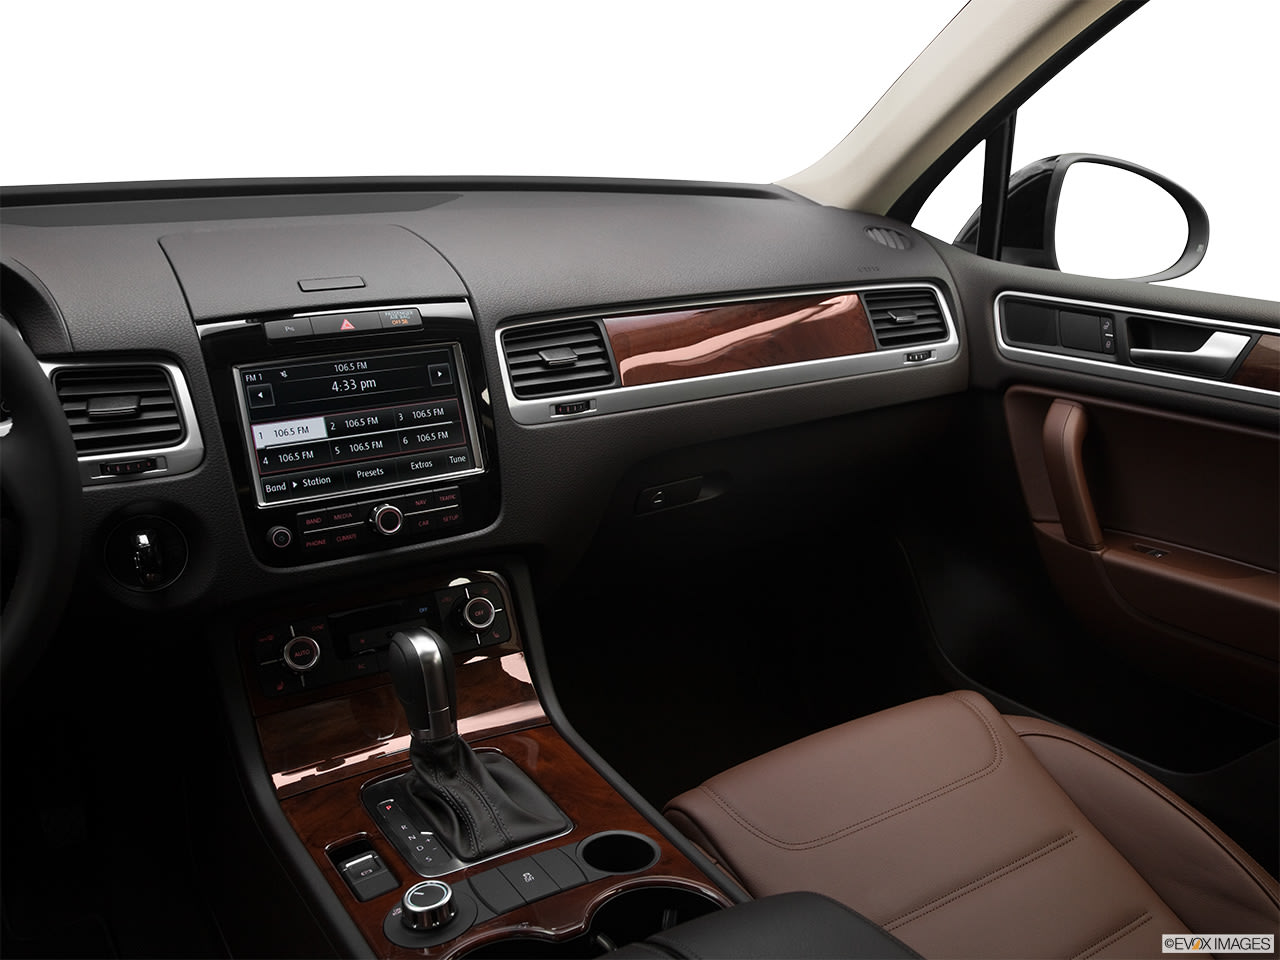 A Buyer's Guide to the 2012 Volkswagen Touareg